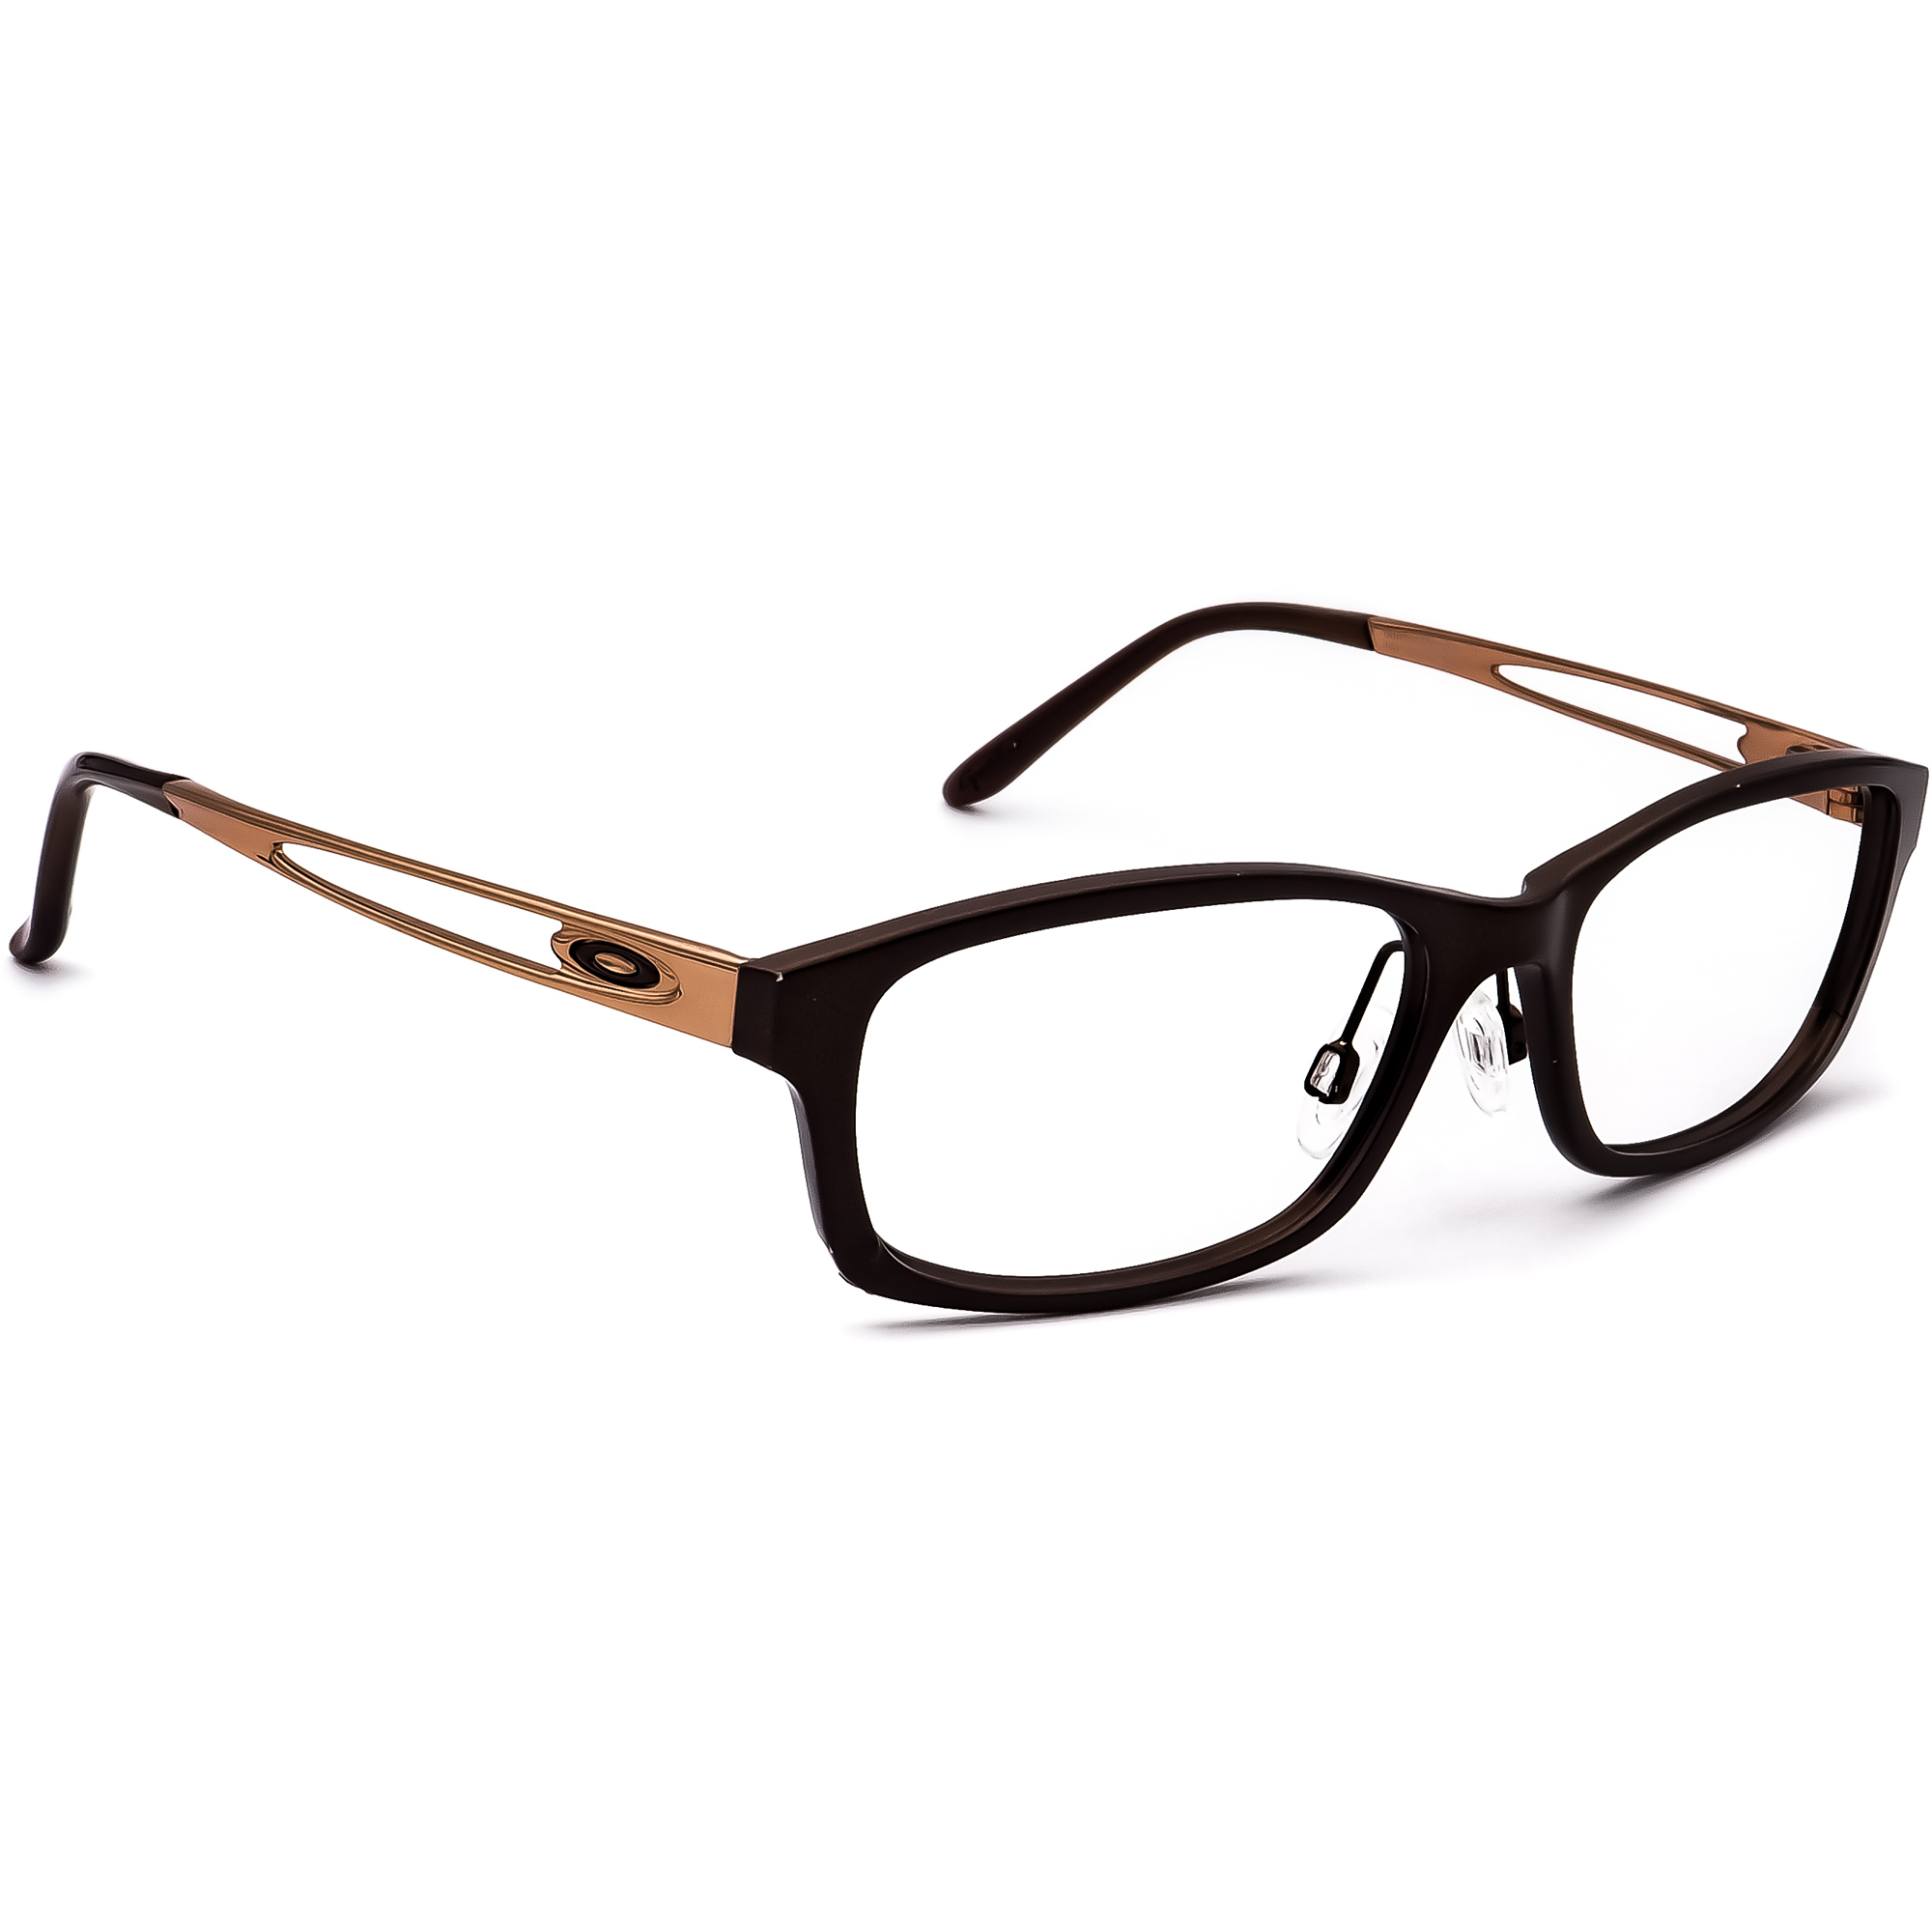 Oakley OX3108-0352 Speculate Eyeglasses